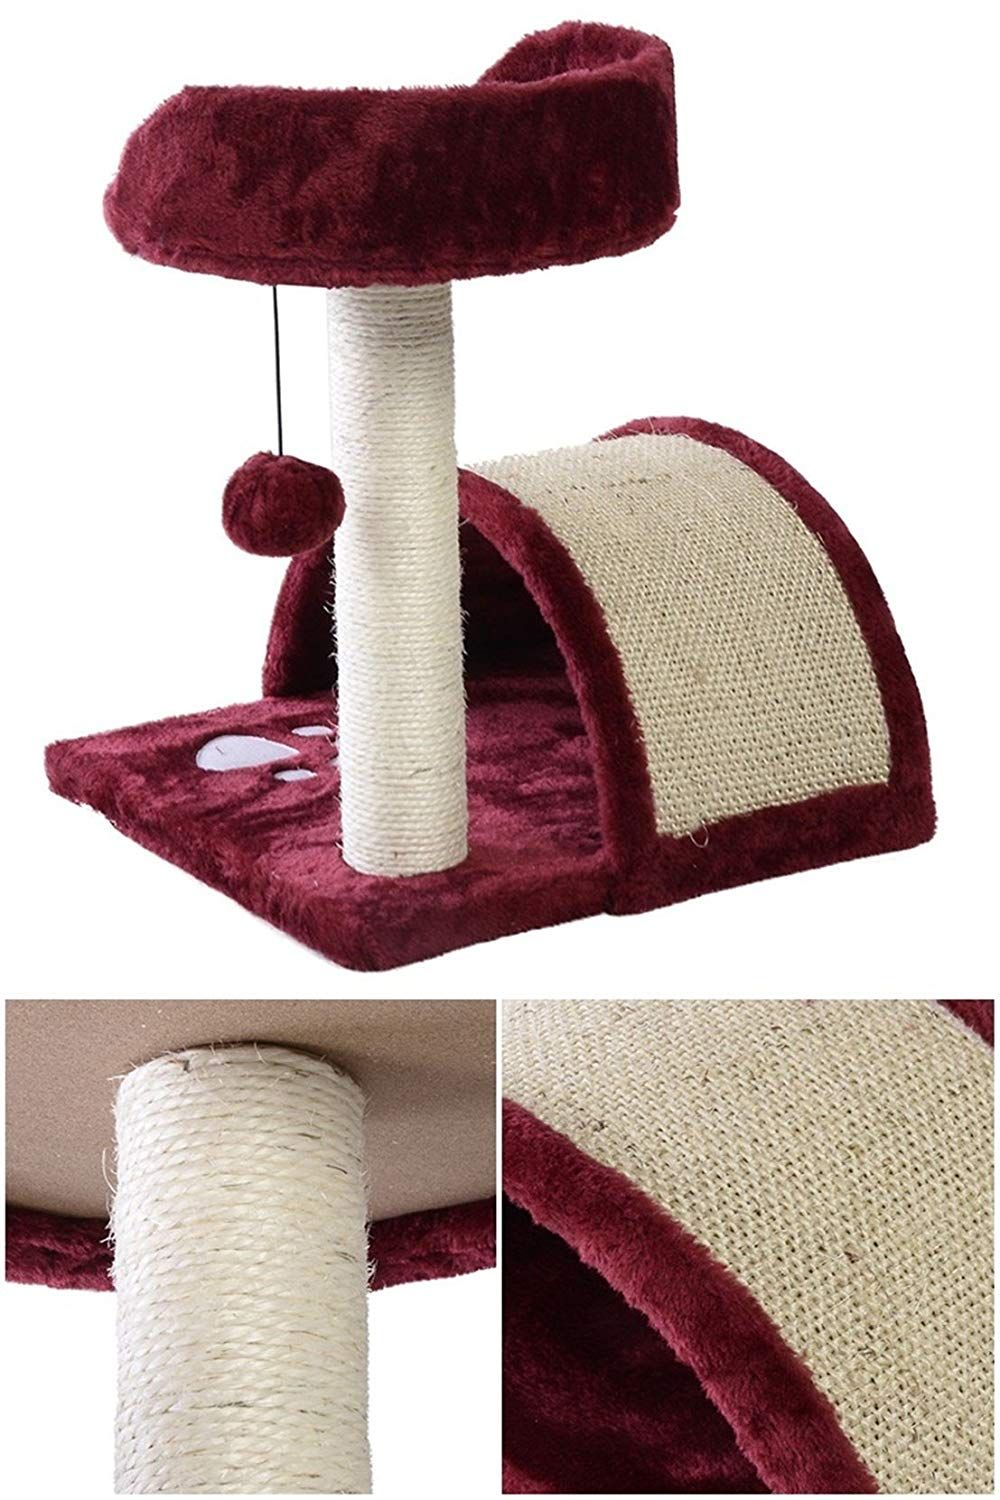 First Class Popular 18 Cat Tree High Stability Furniture Level Condo Color Wine To View Further For This Item Visit The Image Link This I Zhivotnye Mebel